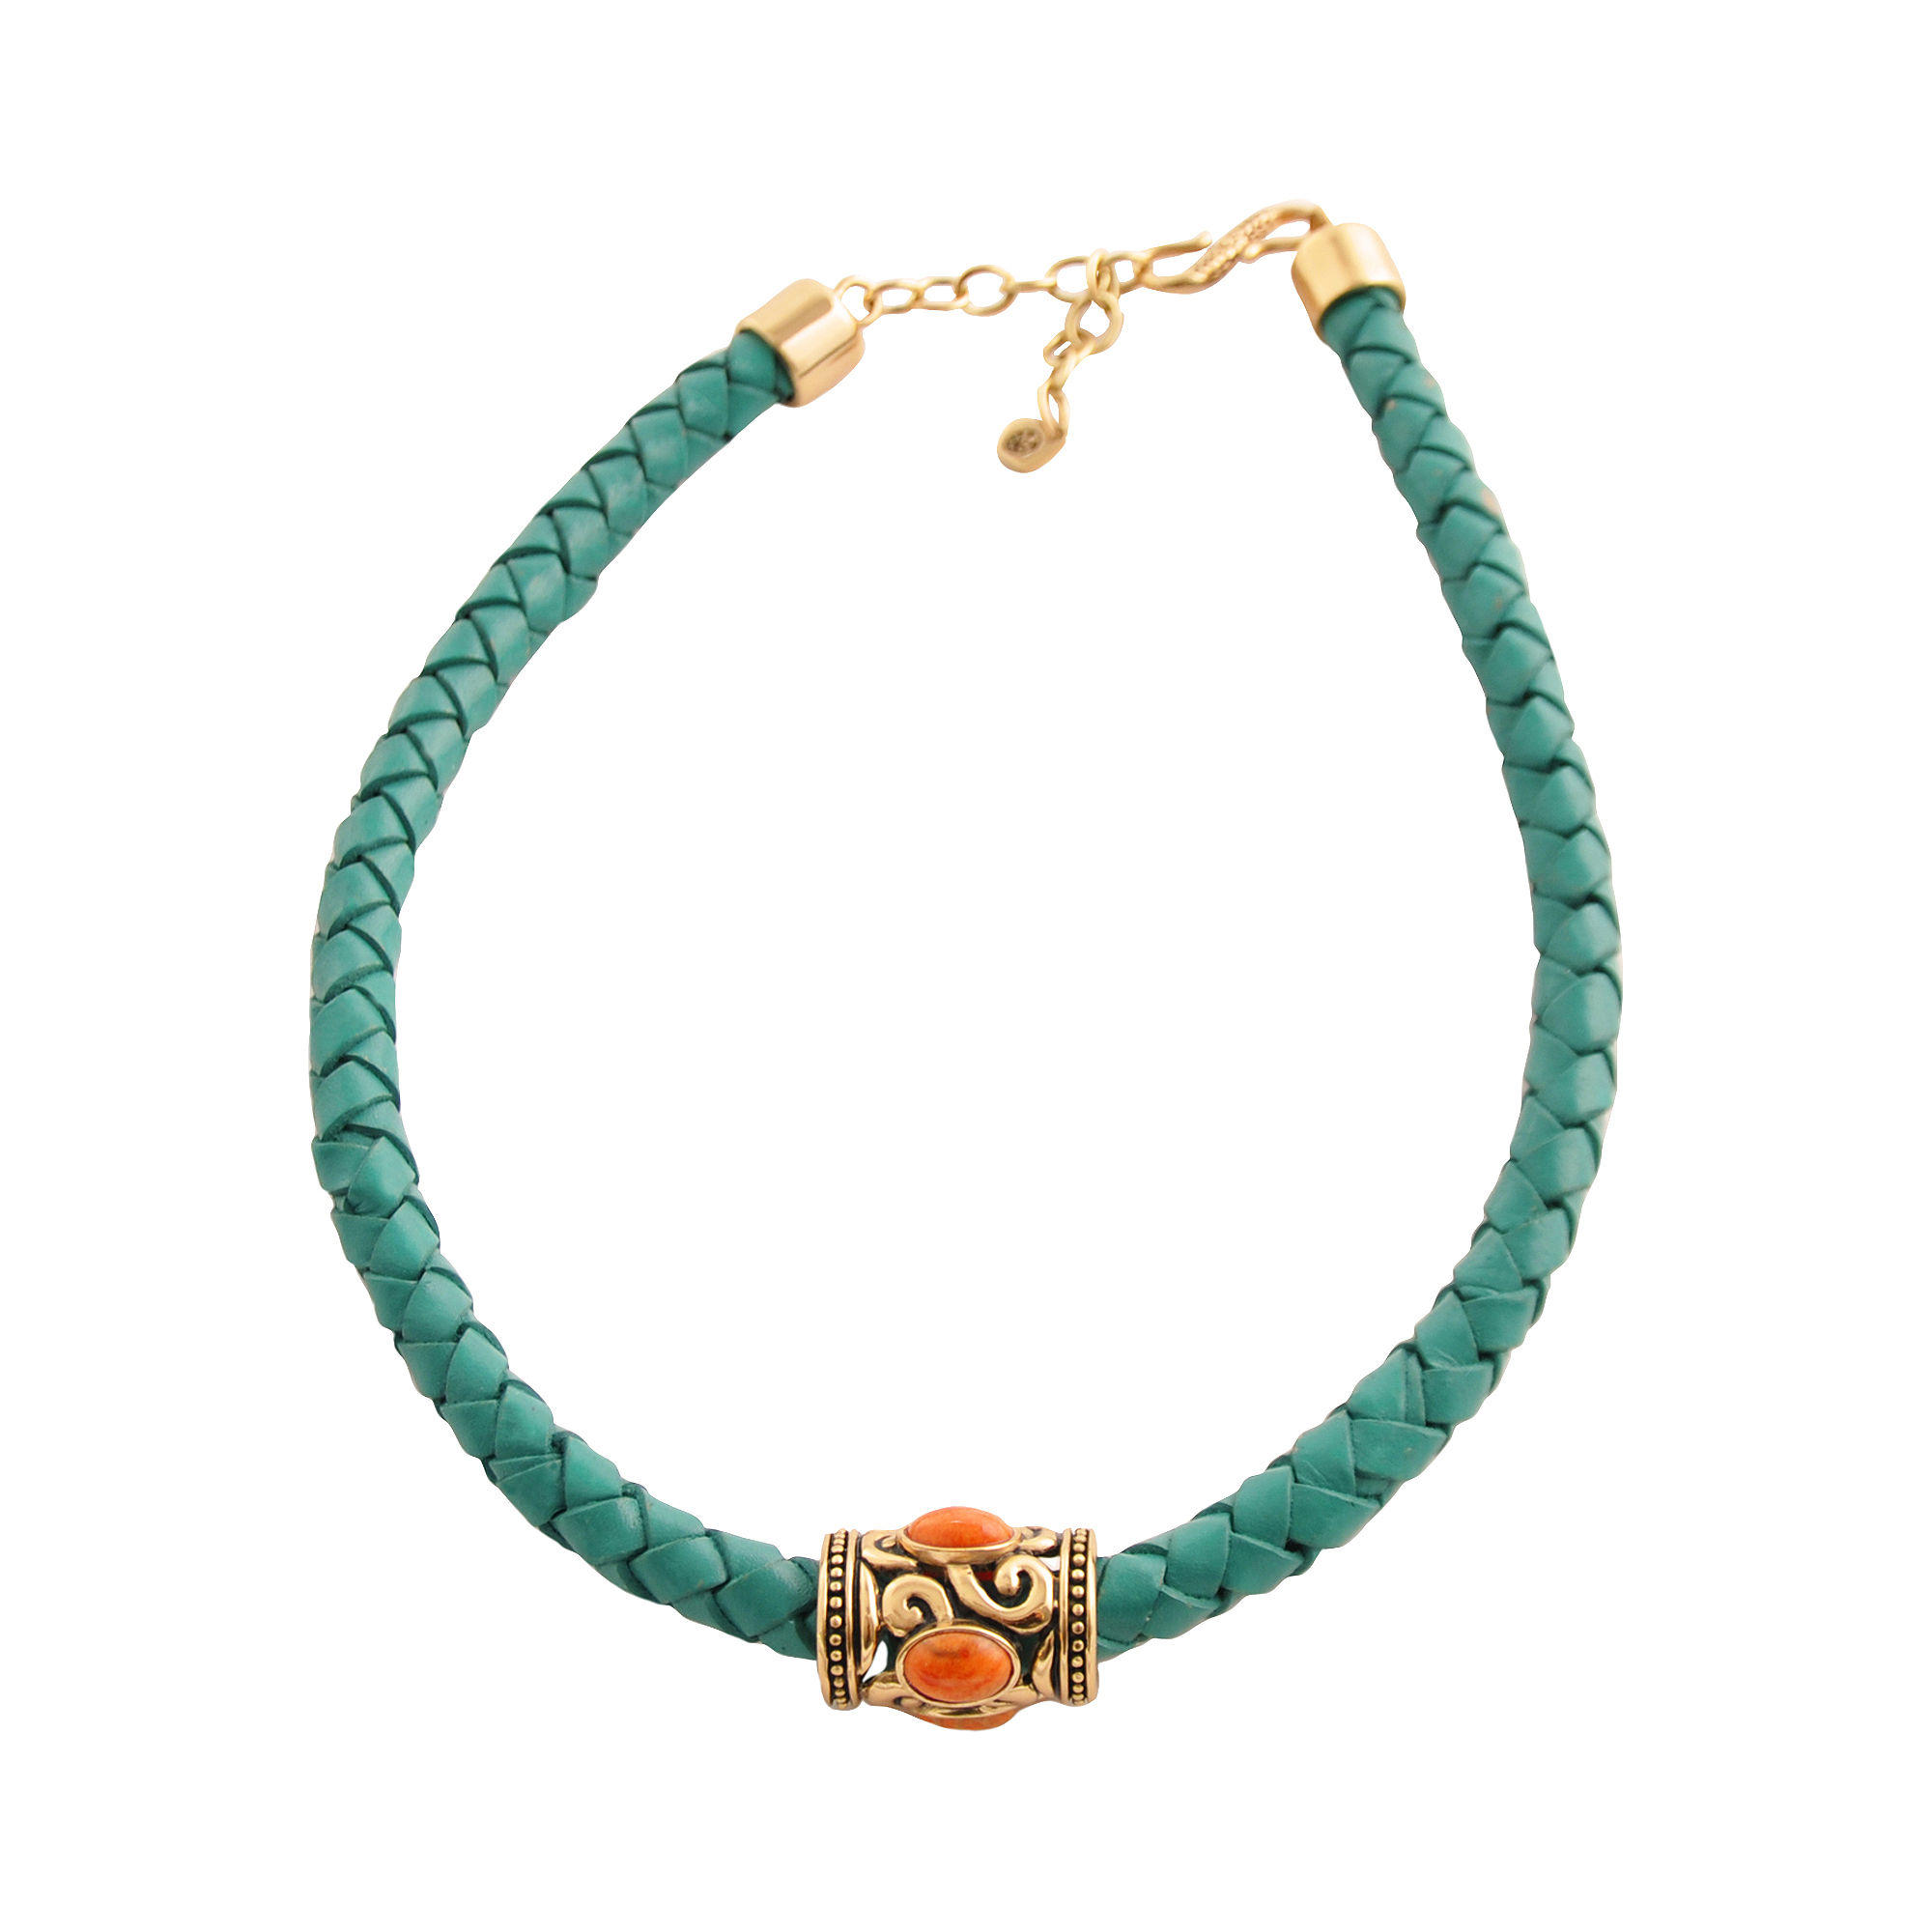 Art Smith by BARSE Coral & Aqua Leather Necklace